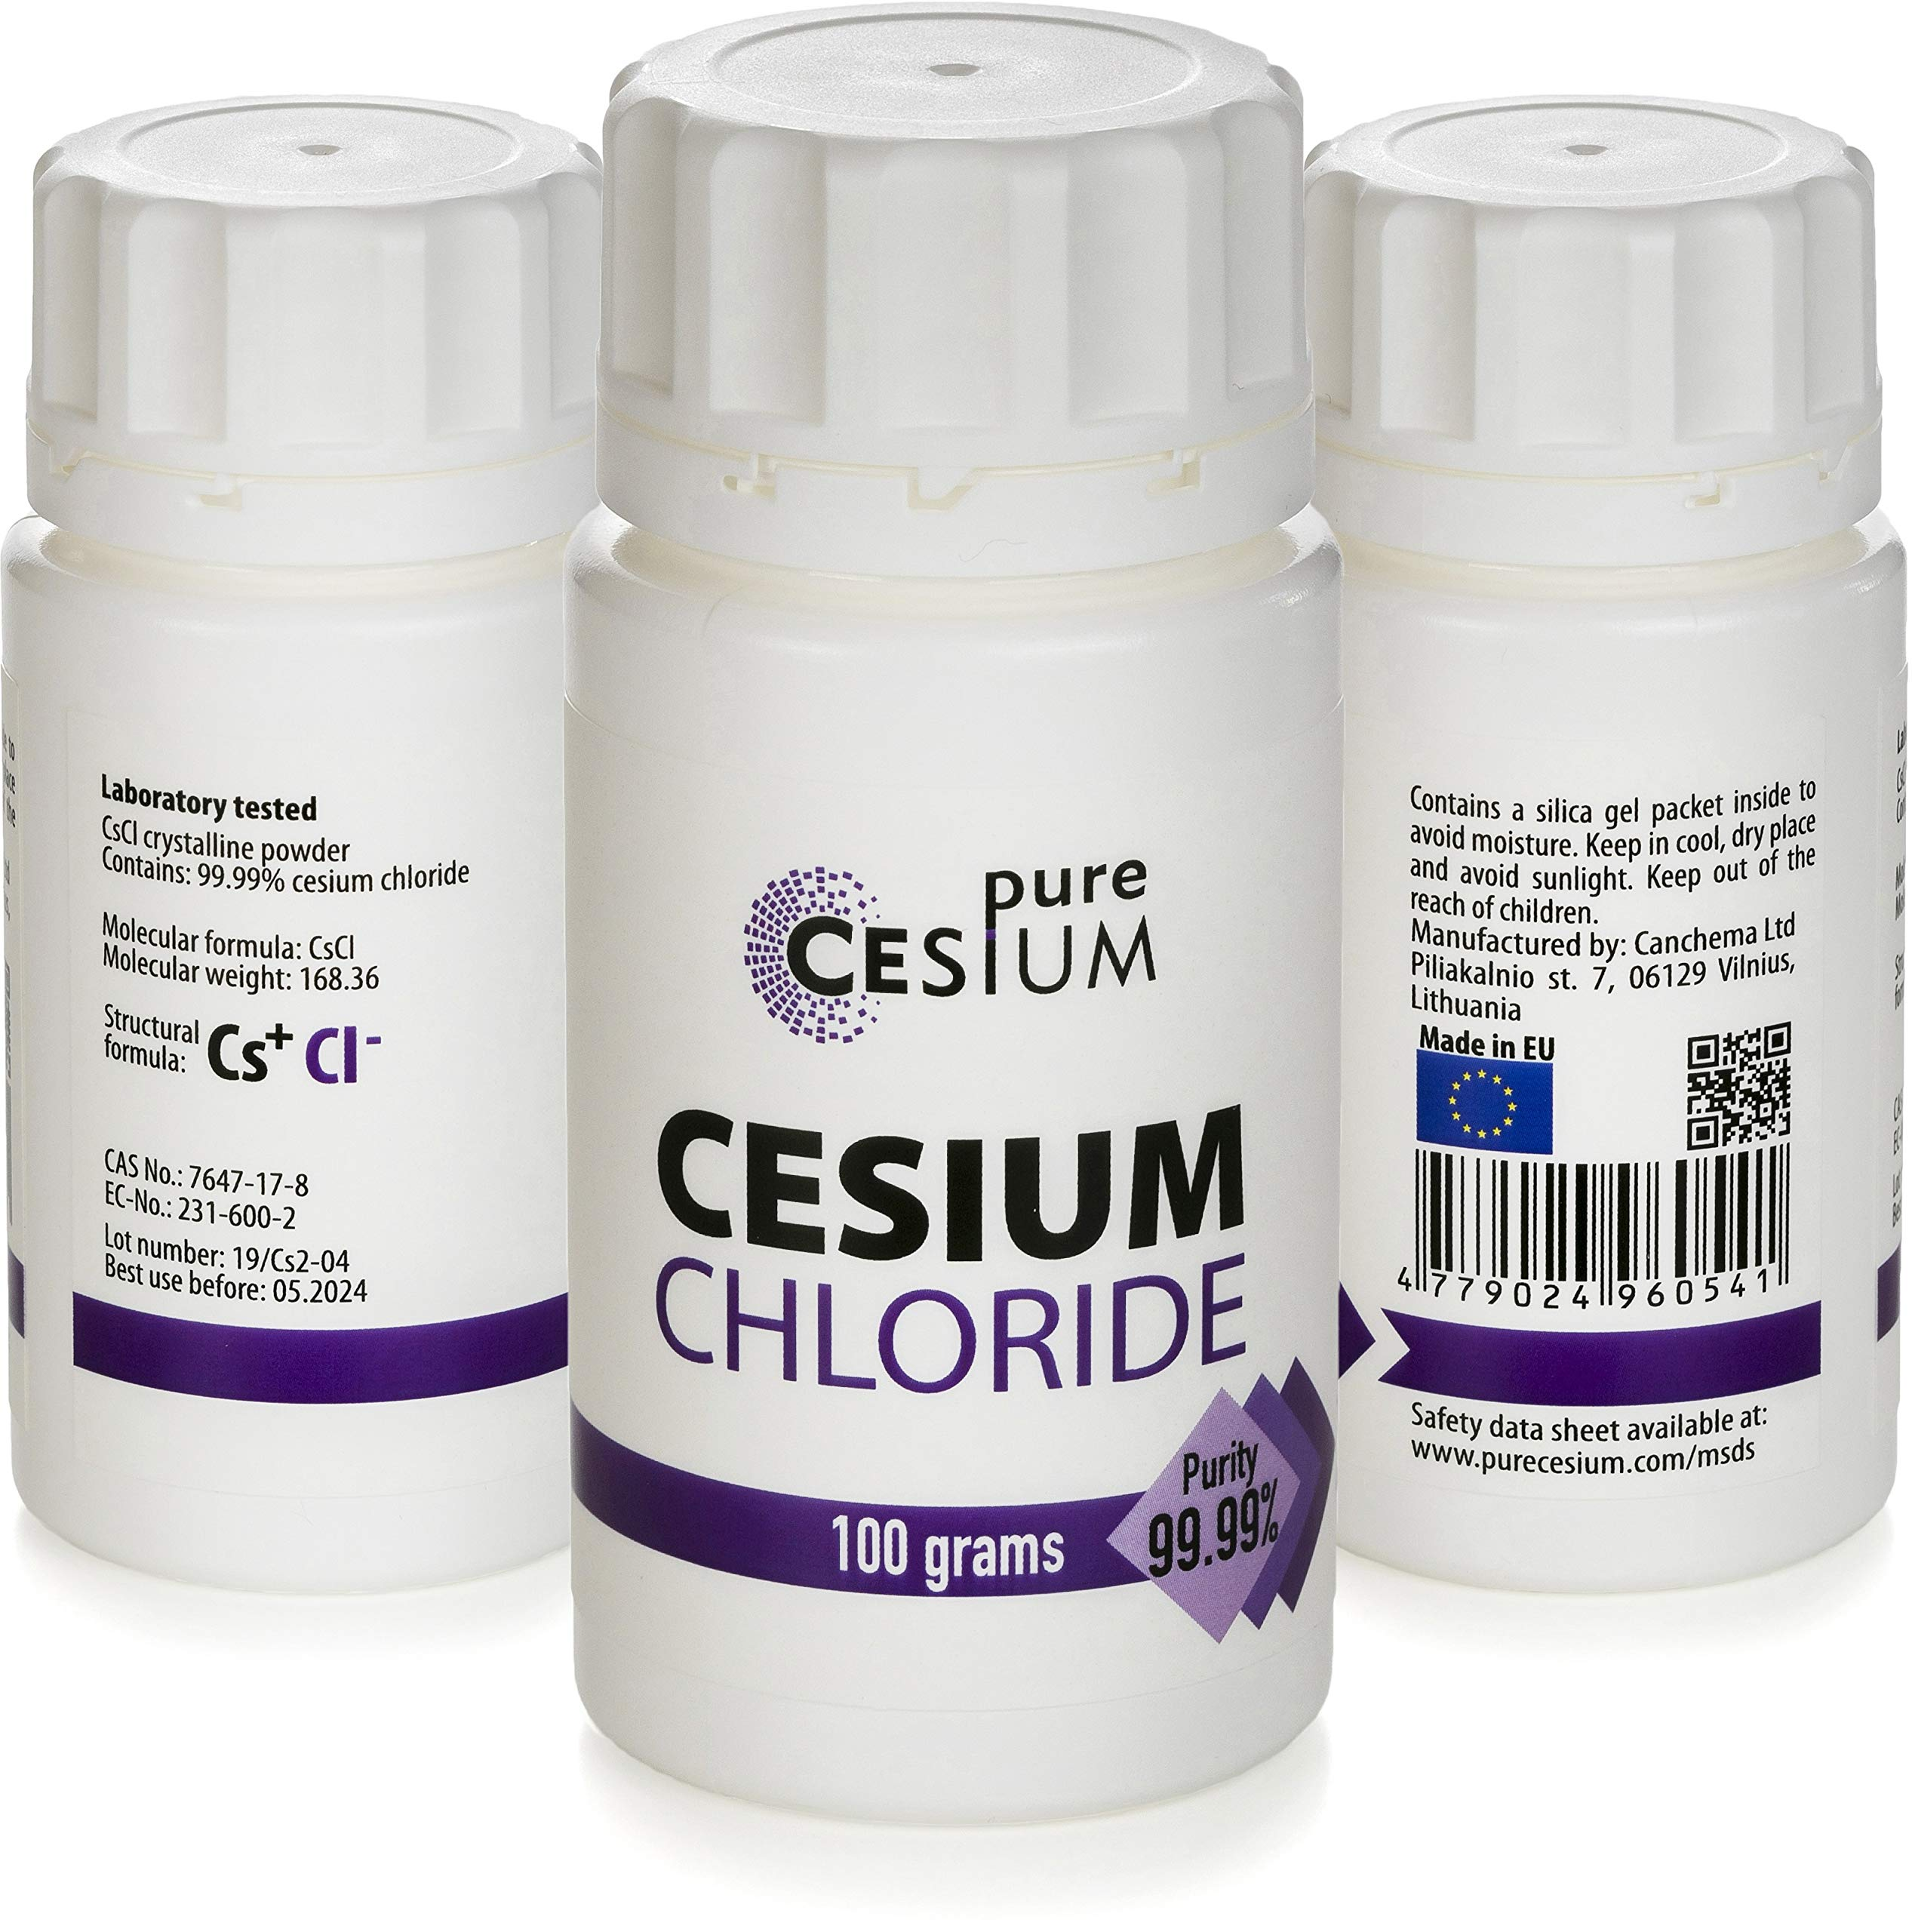 Pure Cesium Chloride CsCl 100g Crystal Powder, Purity >99.99%, Made in Europe, by Pure Cesium, Certificate of Analysis Included, Tested in a Certified Laboratory, 3.5oz